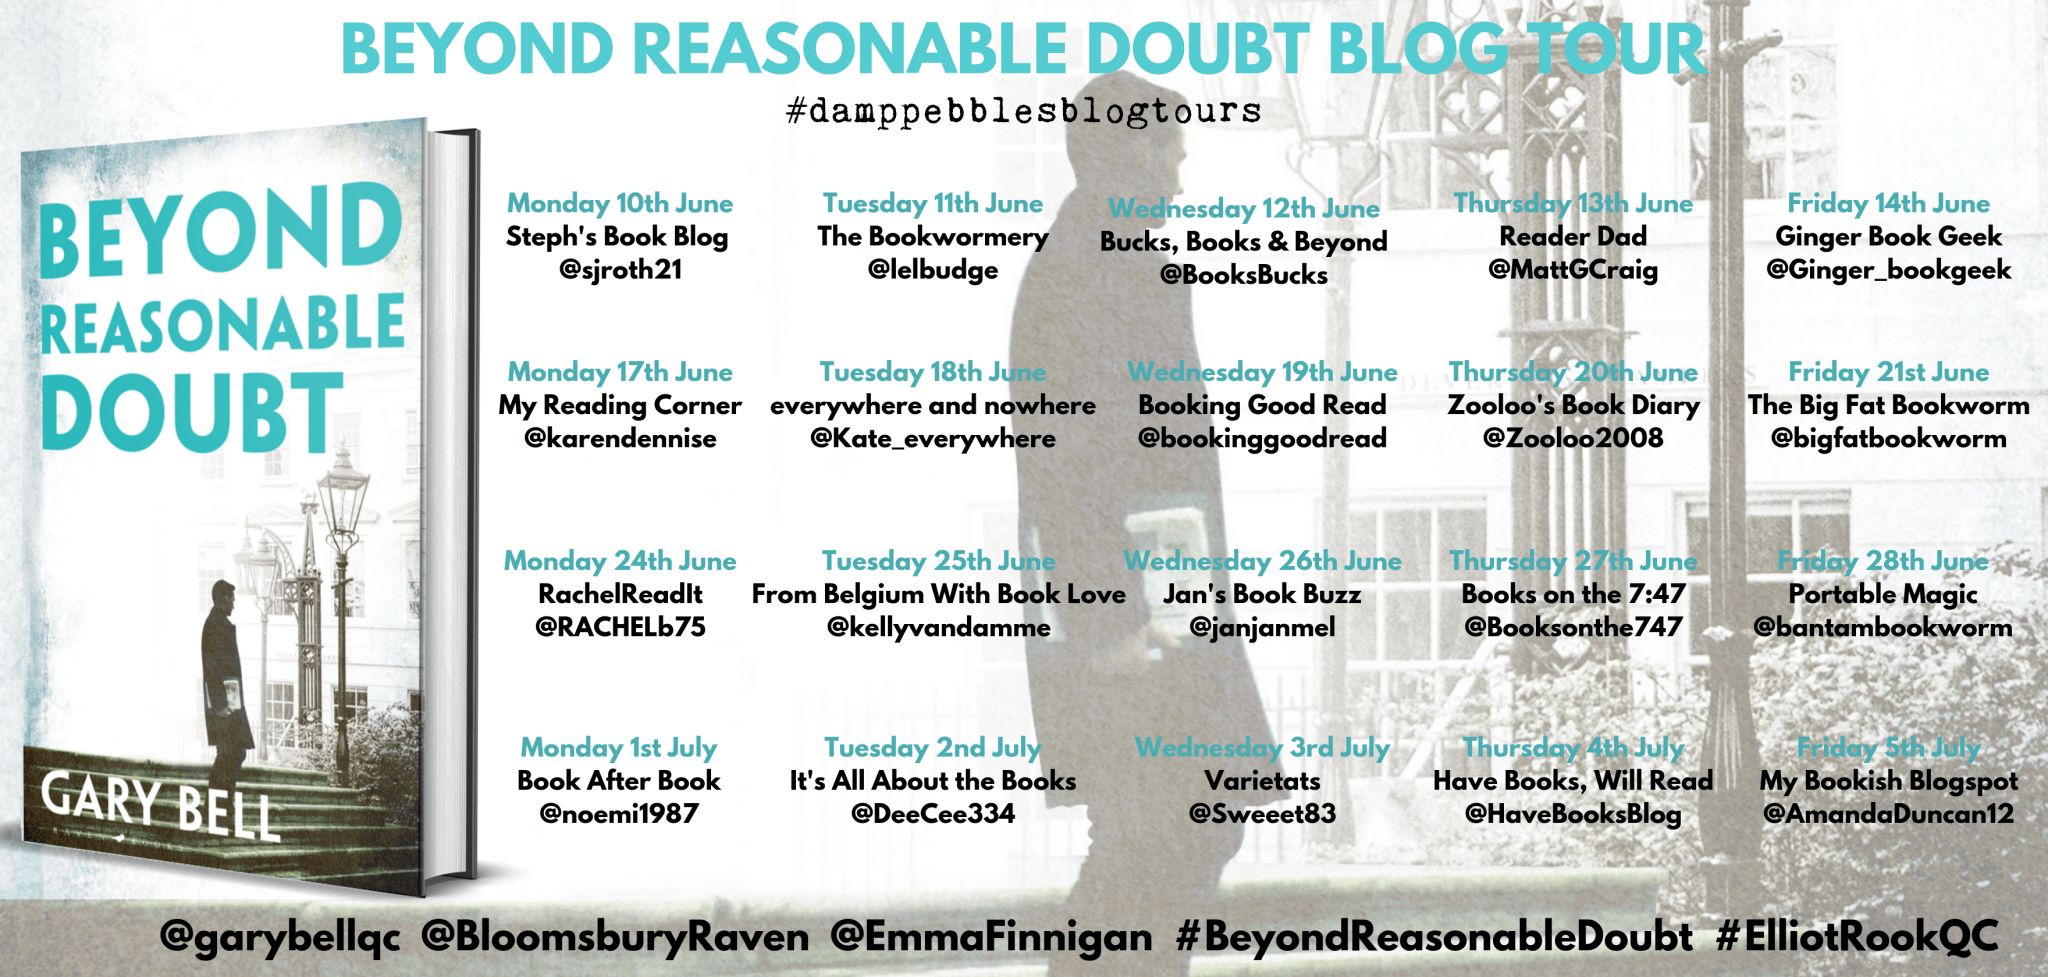 Beyond Reasonable Doubt – Gary Bell